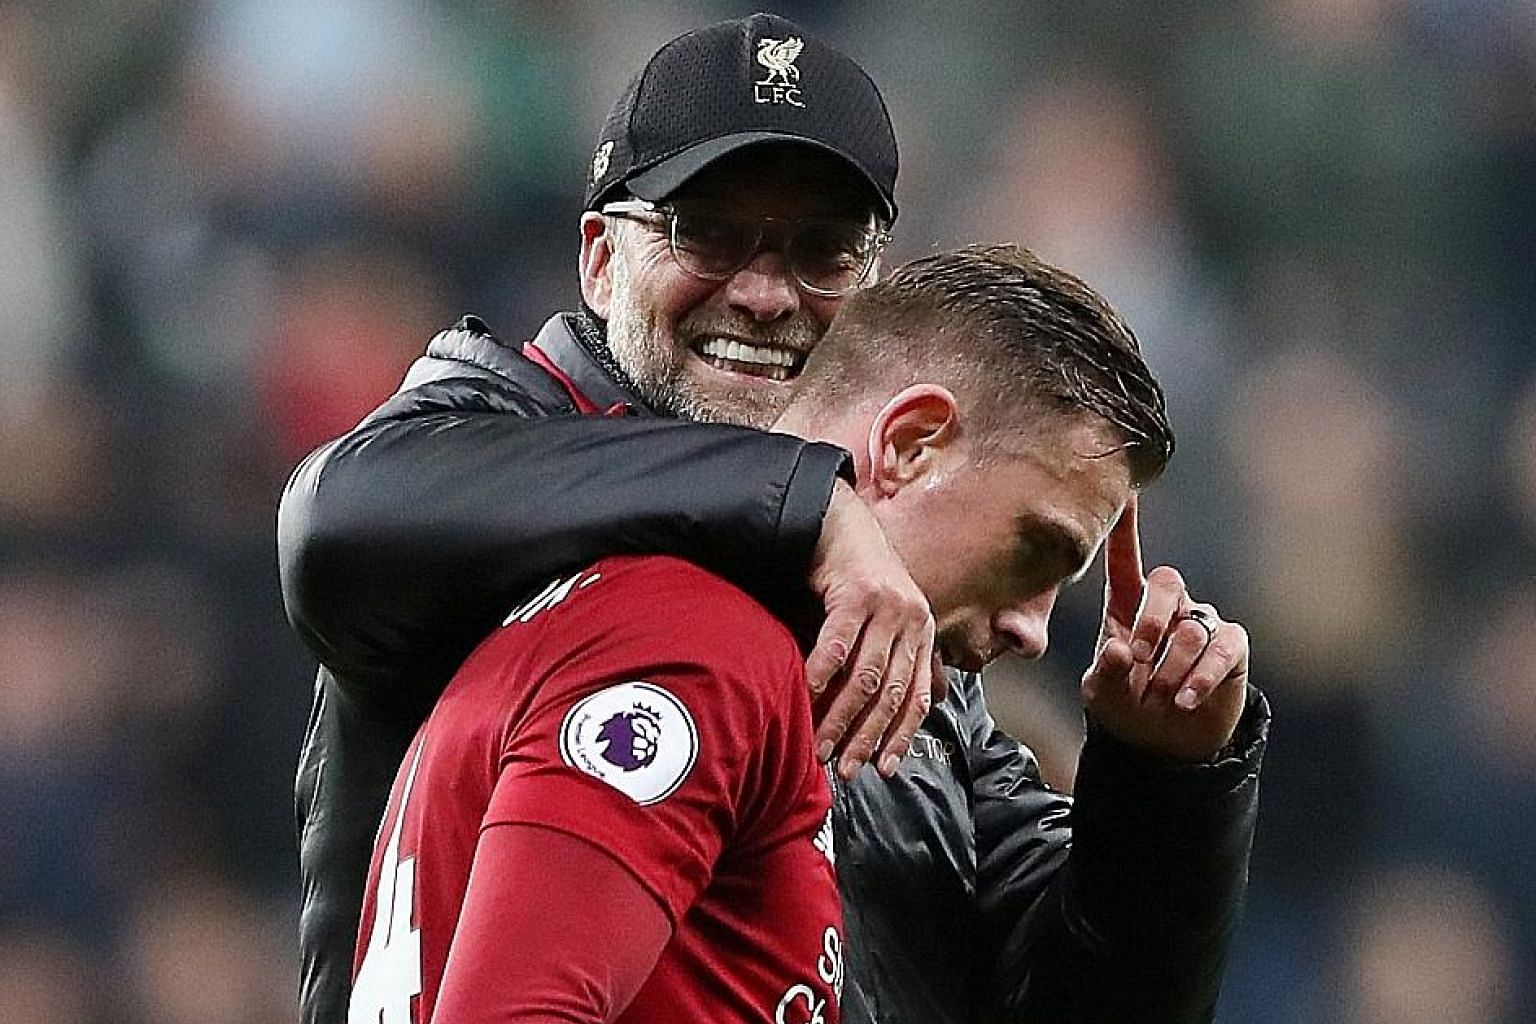 Liverpool manager Jurgen Klopp and Jordan Henderson, his captain and workhorse. The Reds and Tottenham have harnessed English football's traditional strengths, energy and never-say-die spirit, with great success. PHOTO: REUTERS